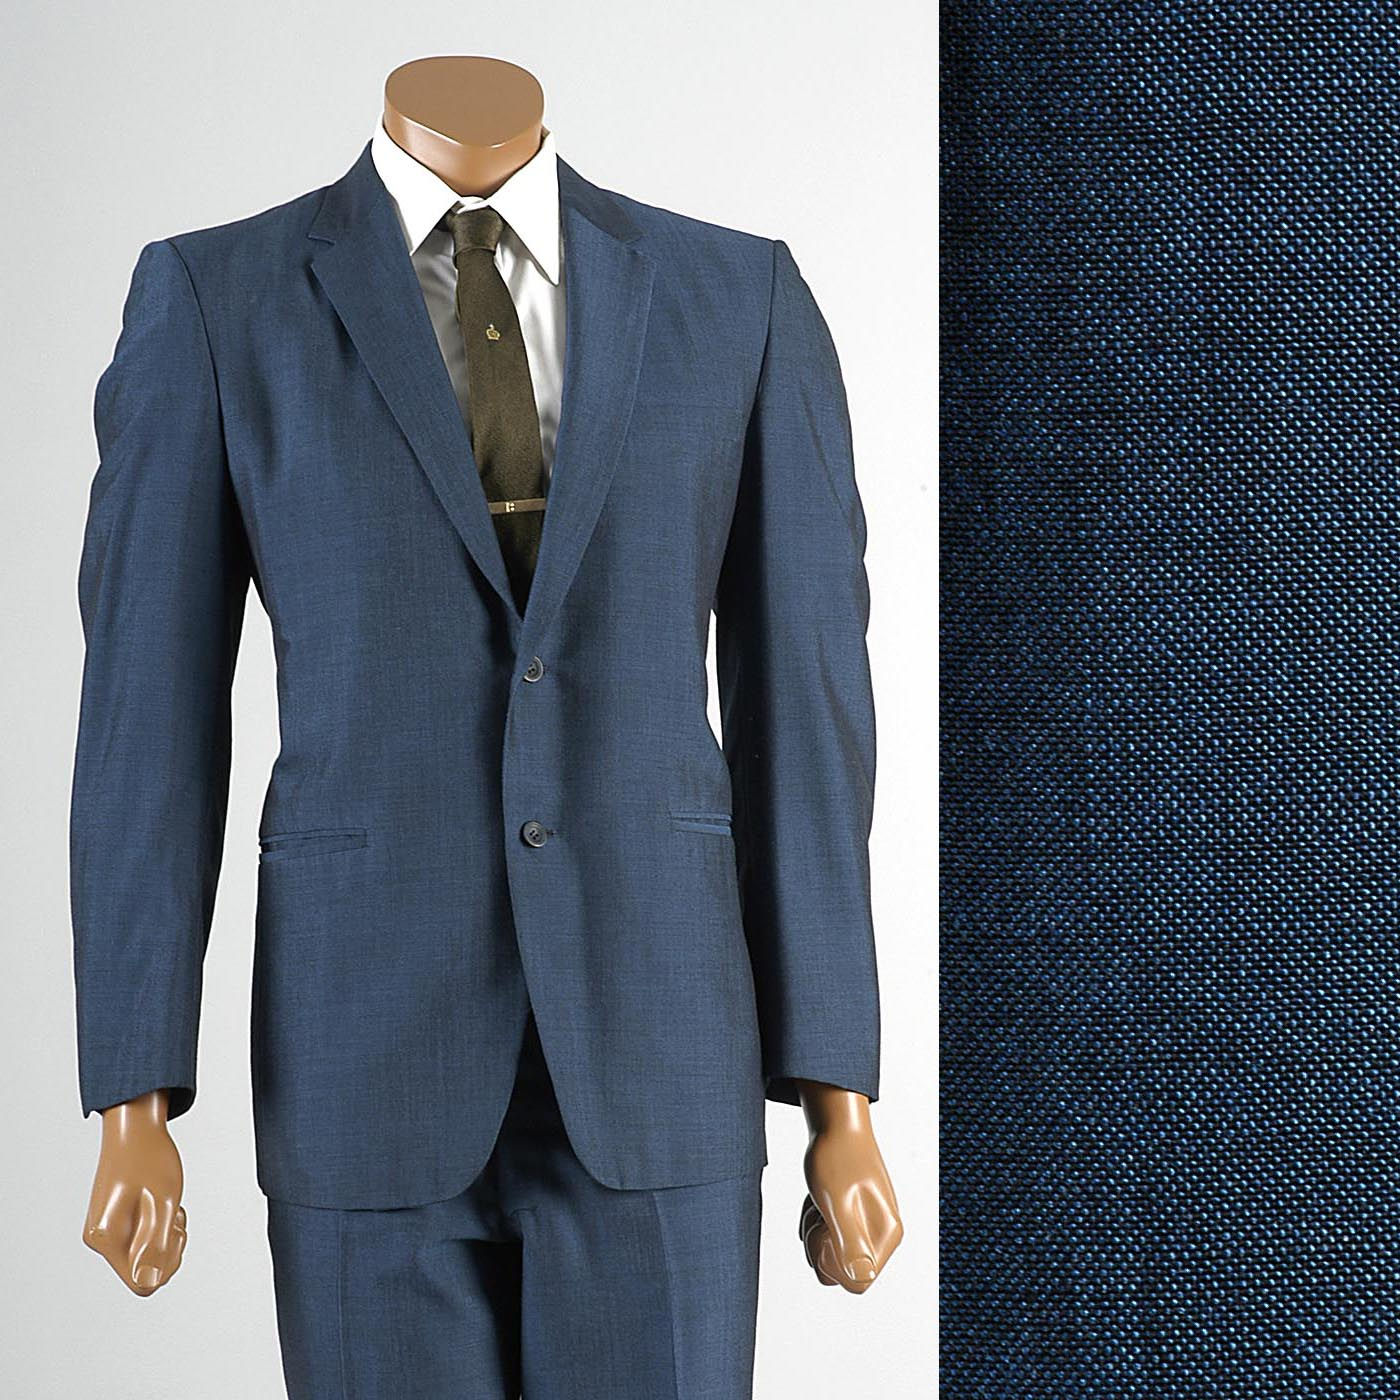 1960s Men's Blue & Black Sharkskin Two Piece Suit